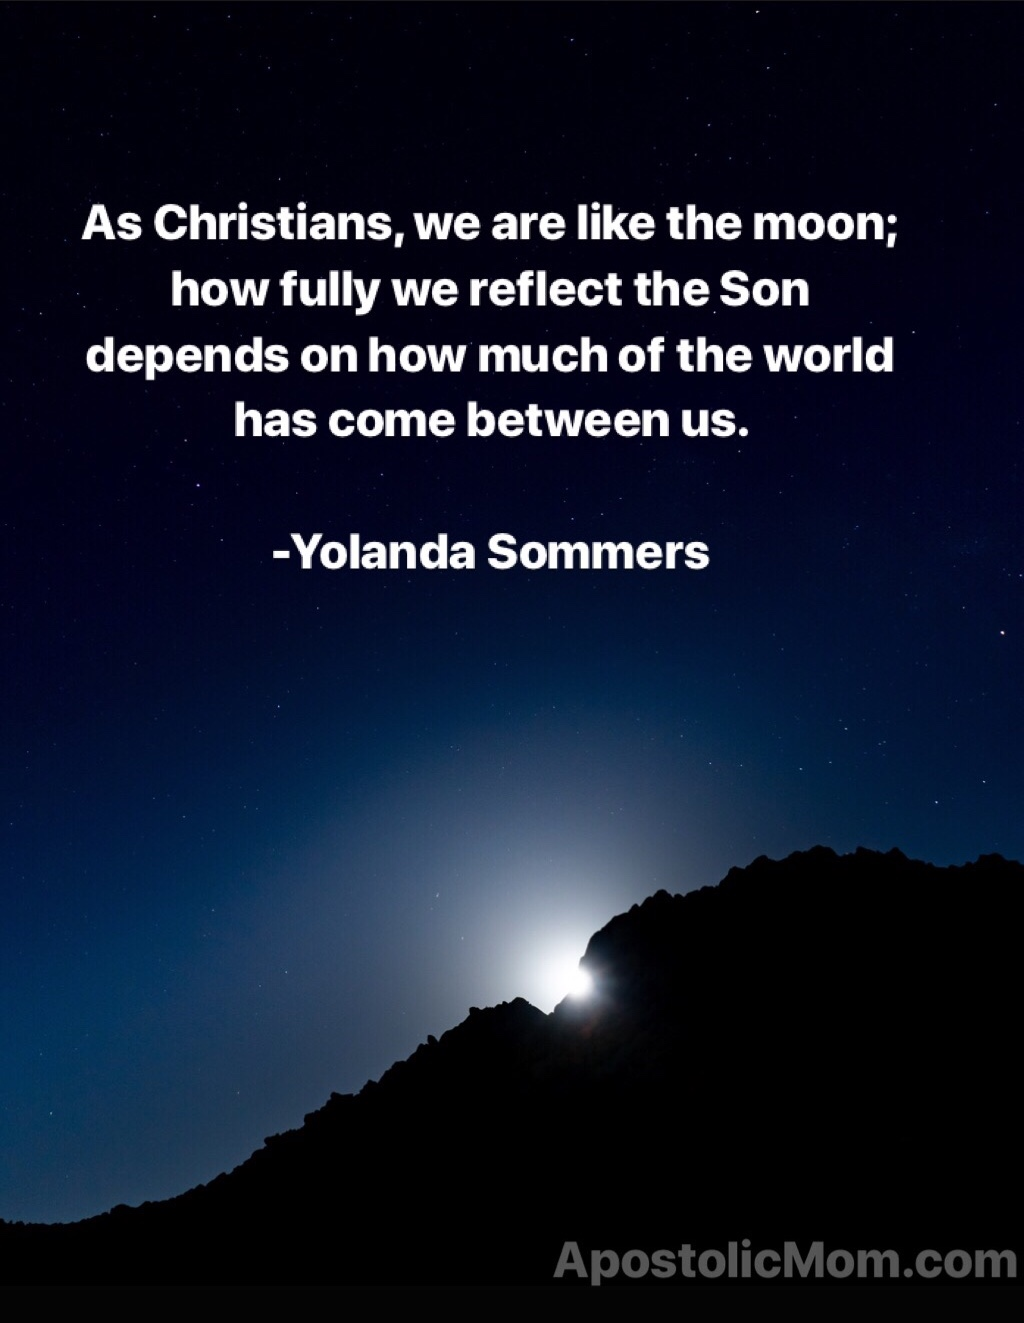 night sky background with text: As Christians, we are like the moon; how fully we reflect the Son depends on how much of the world has come between us. -Yolanda Sommers